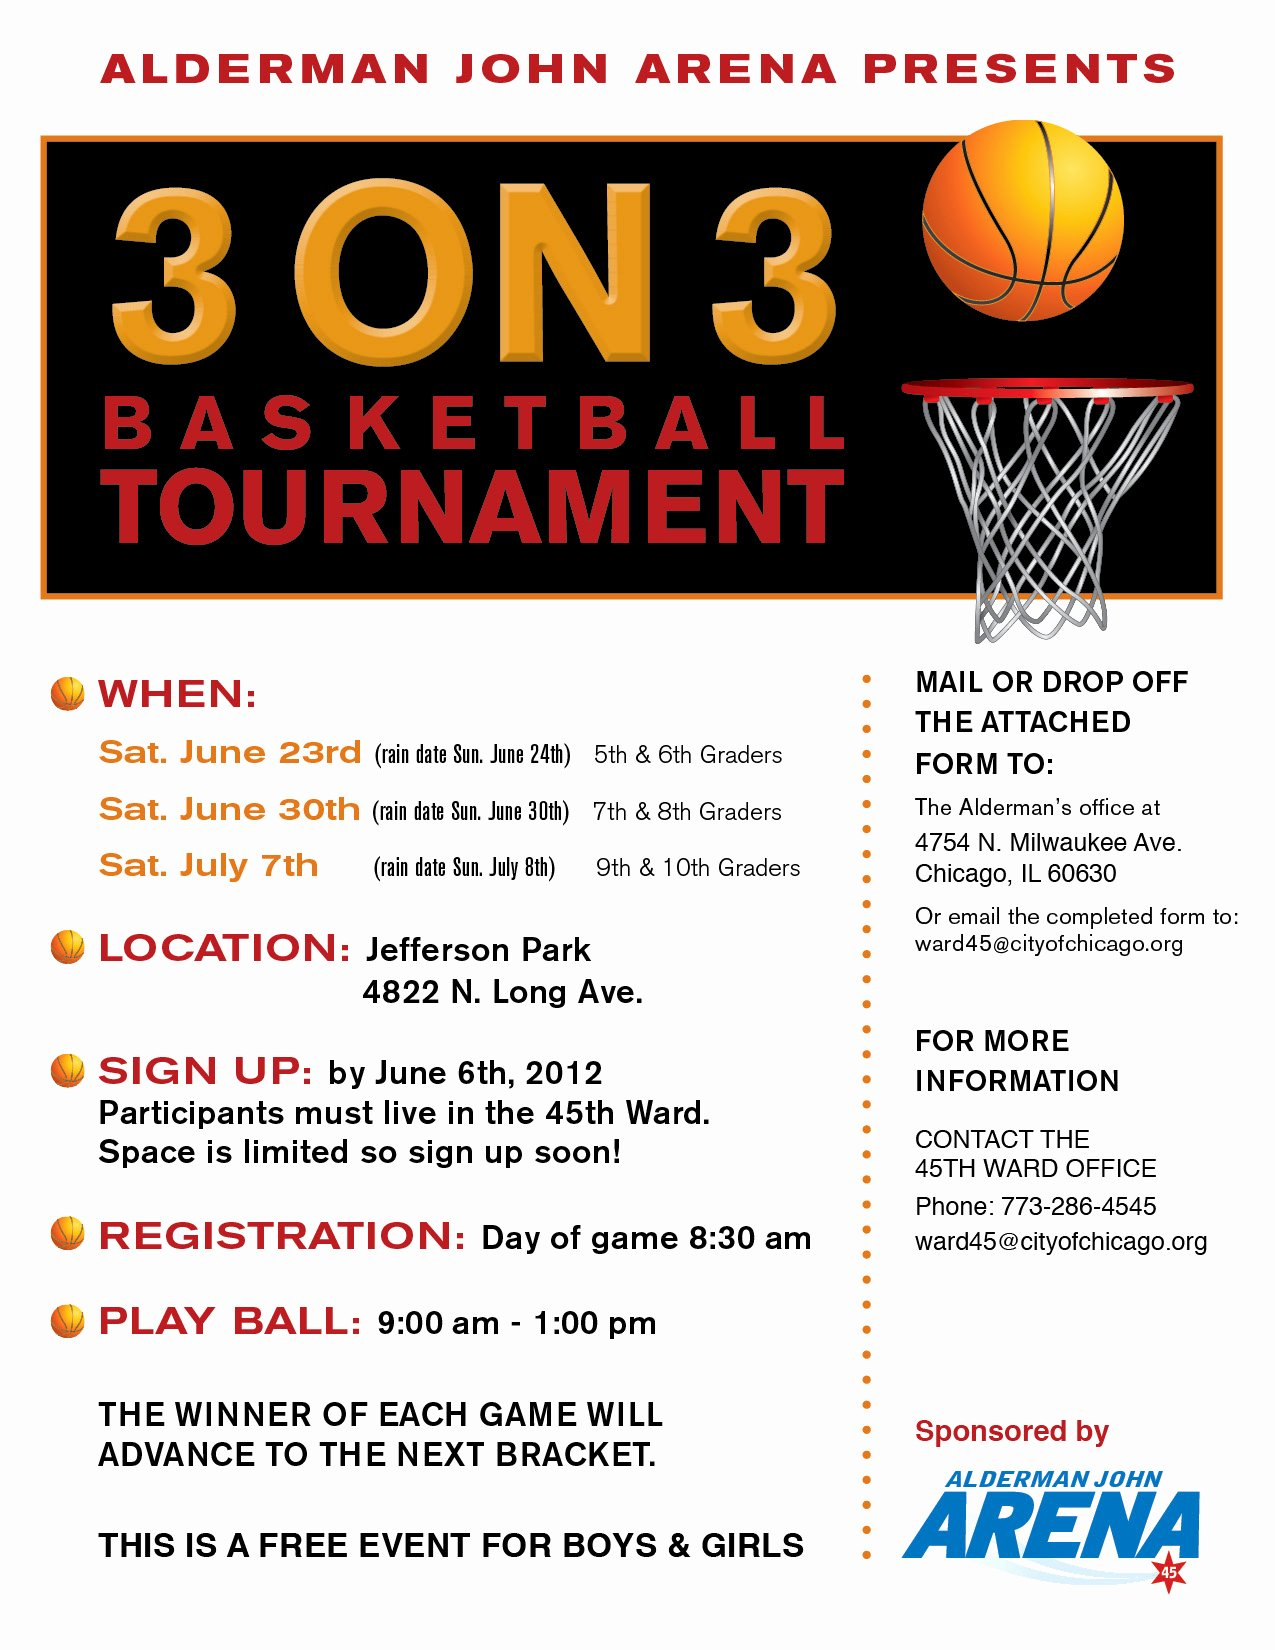 Basketball tournament Flyer Template Best Of 3on3 Flyer Flyer